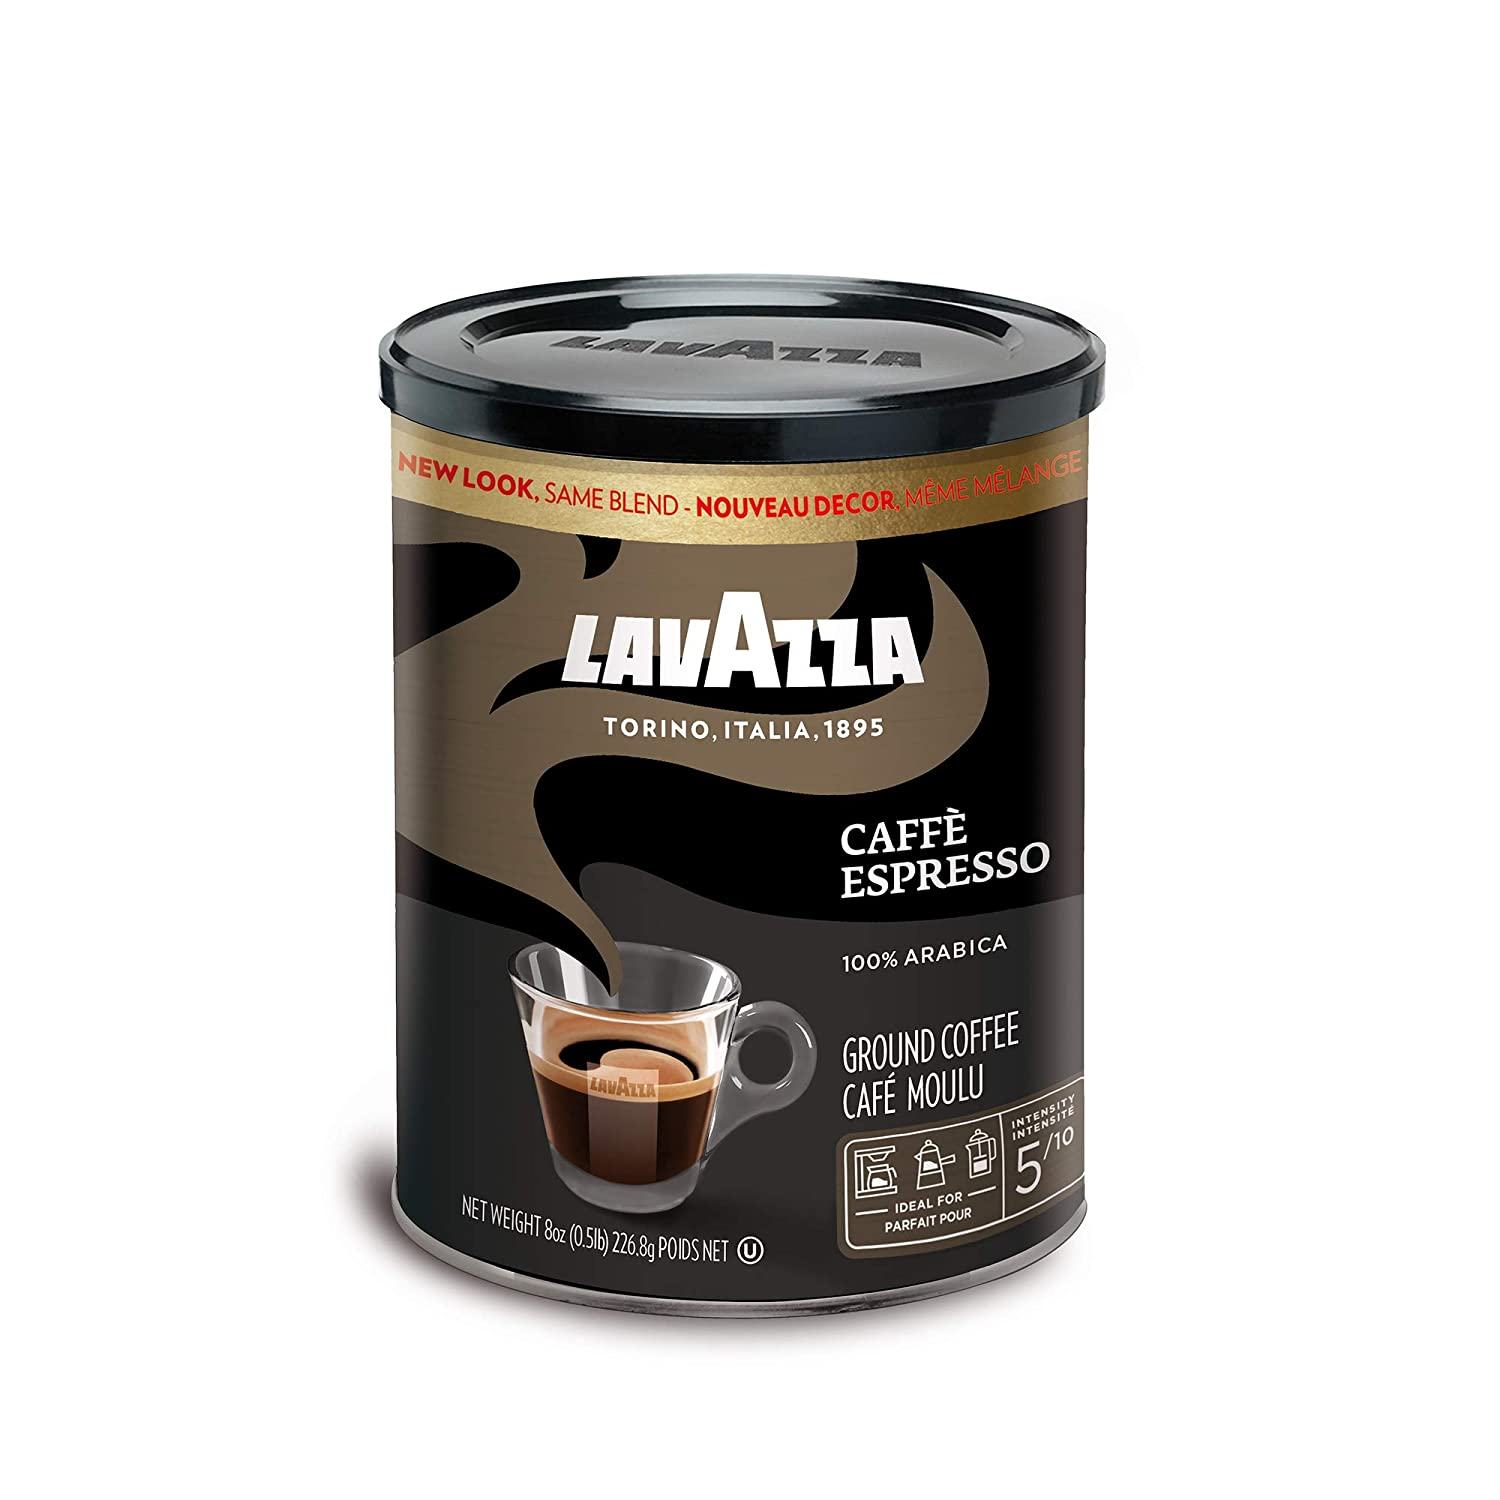 Lavazza Caffe Espresso Ground Coffee Blend, Medium Roast, 8-Ounce Cans,Pack of 4